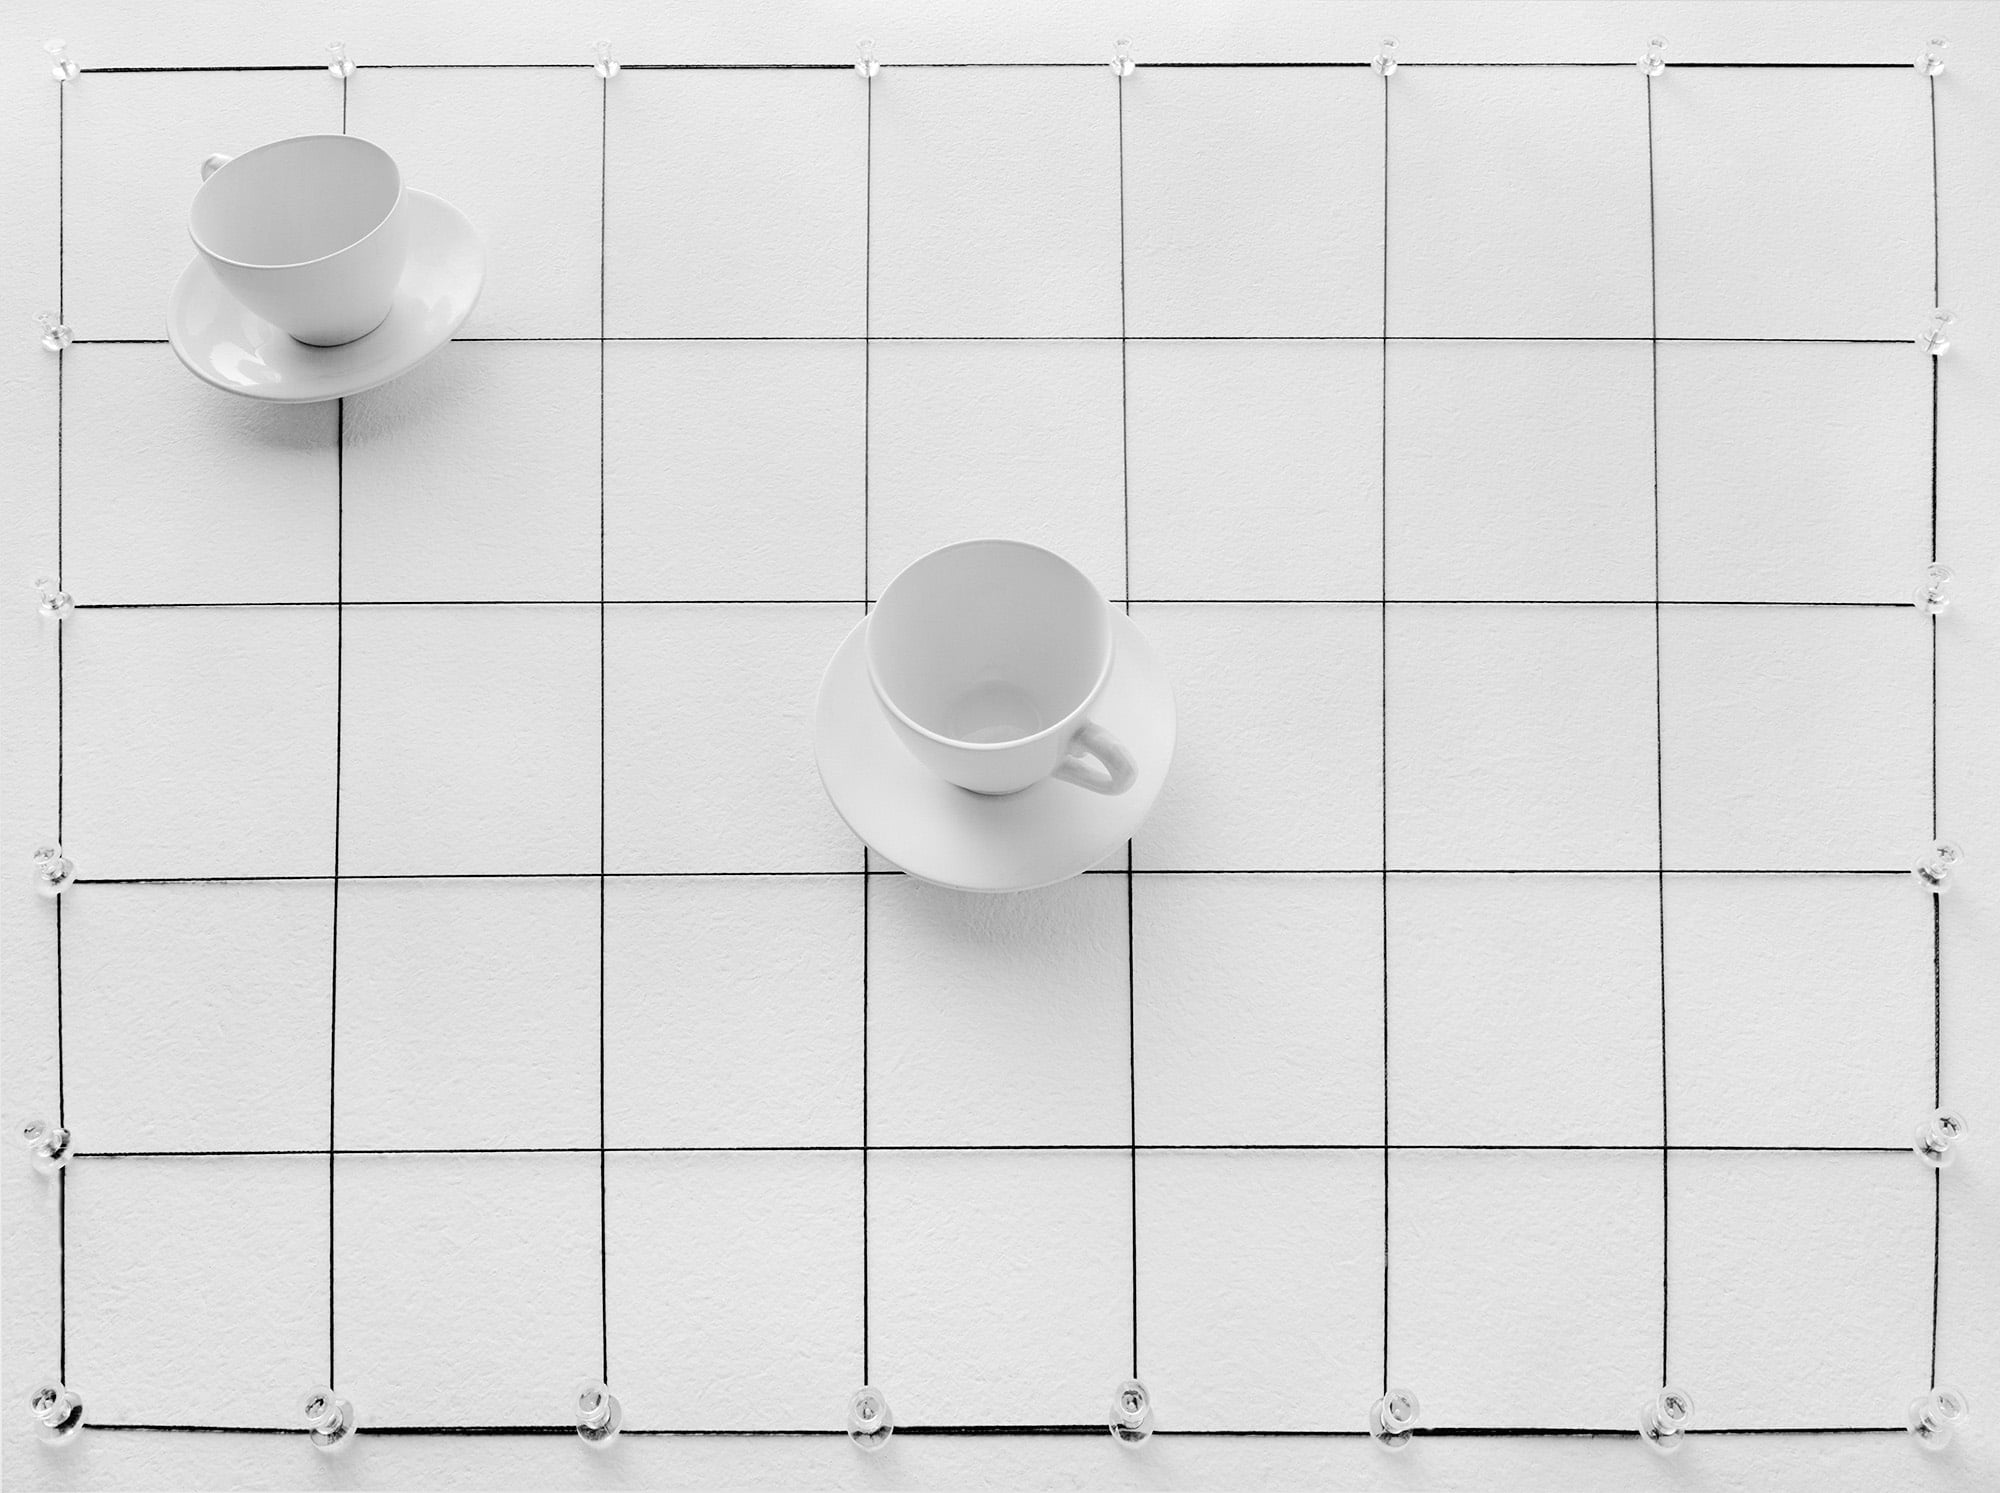 Cups and Saucers, 1977